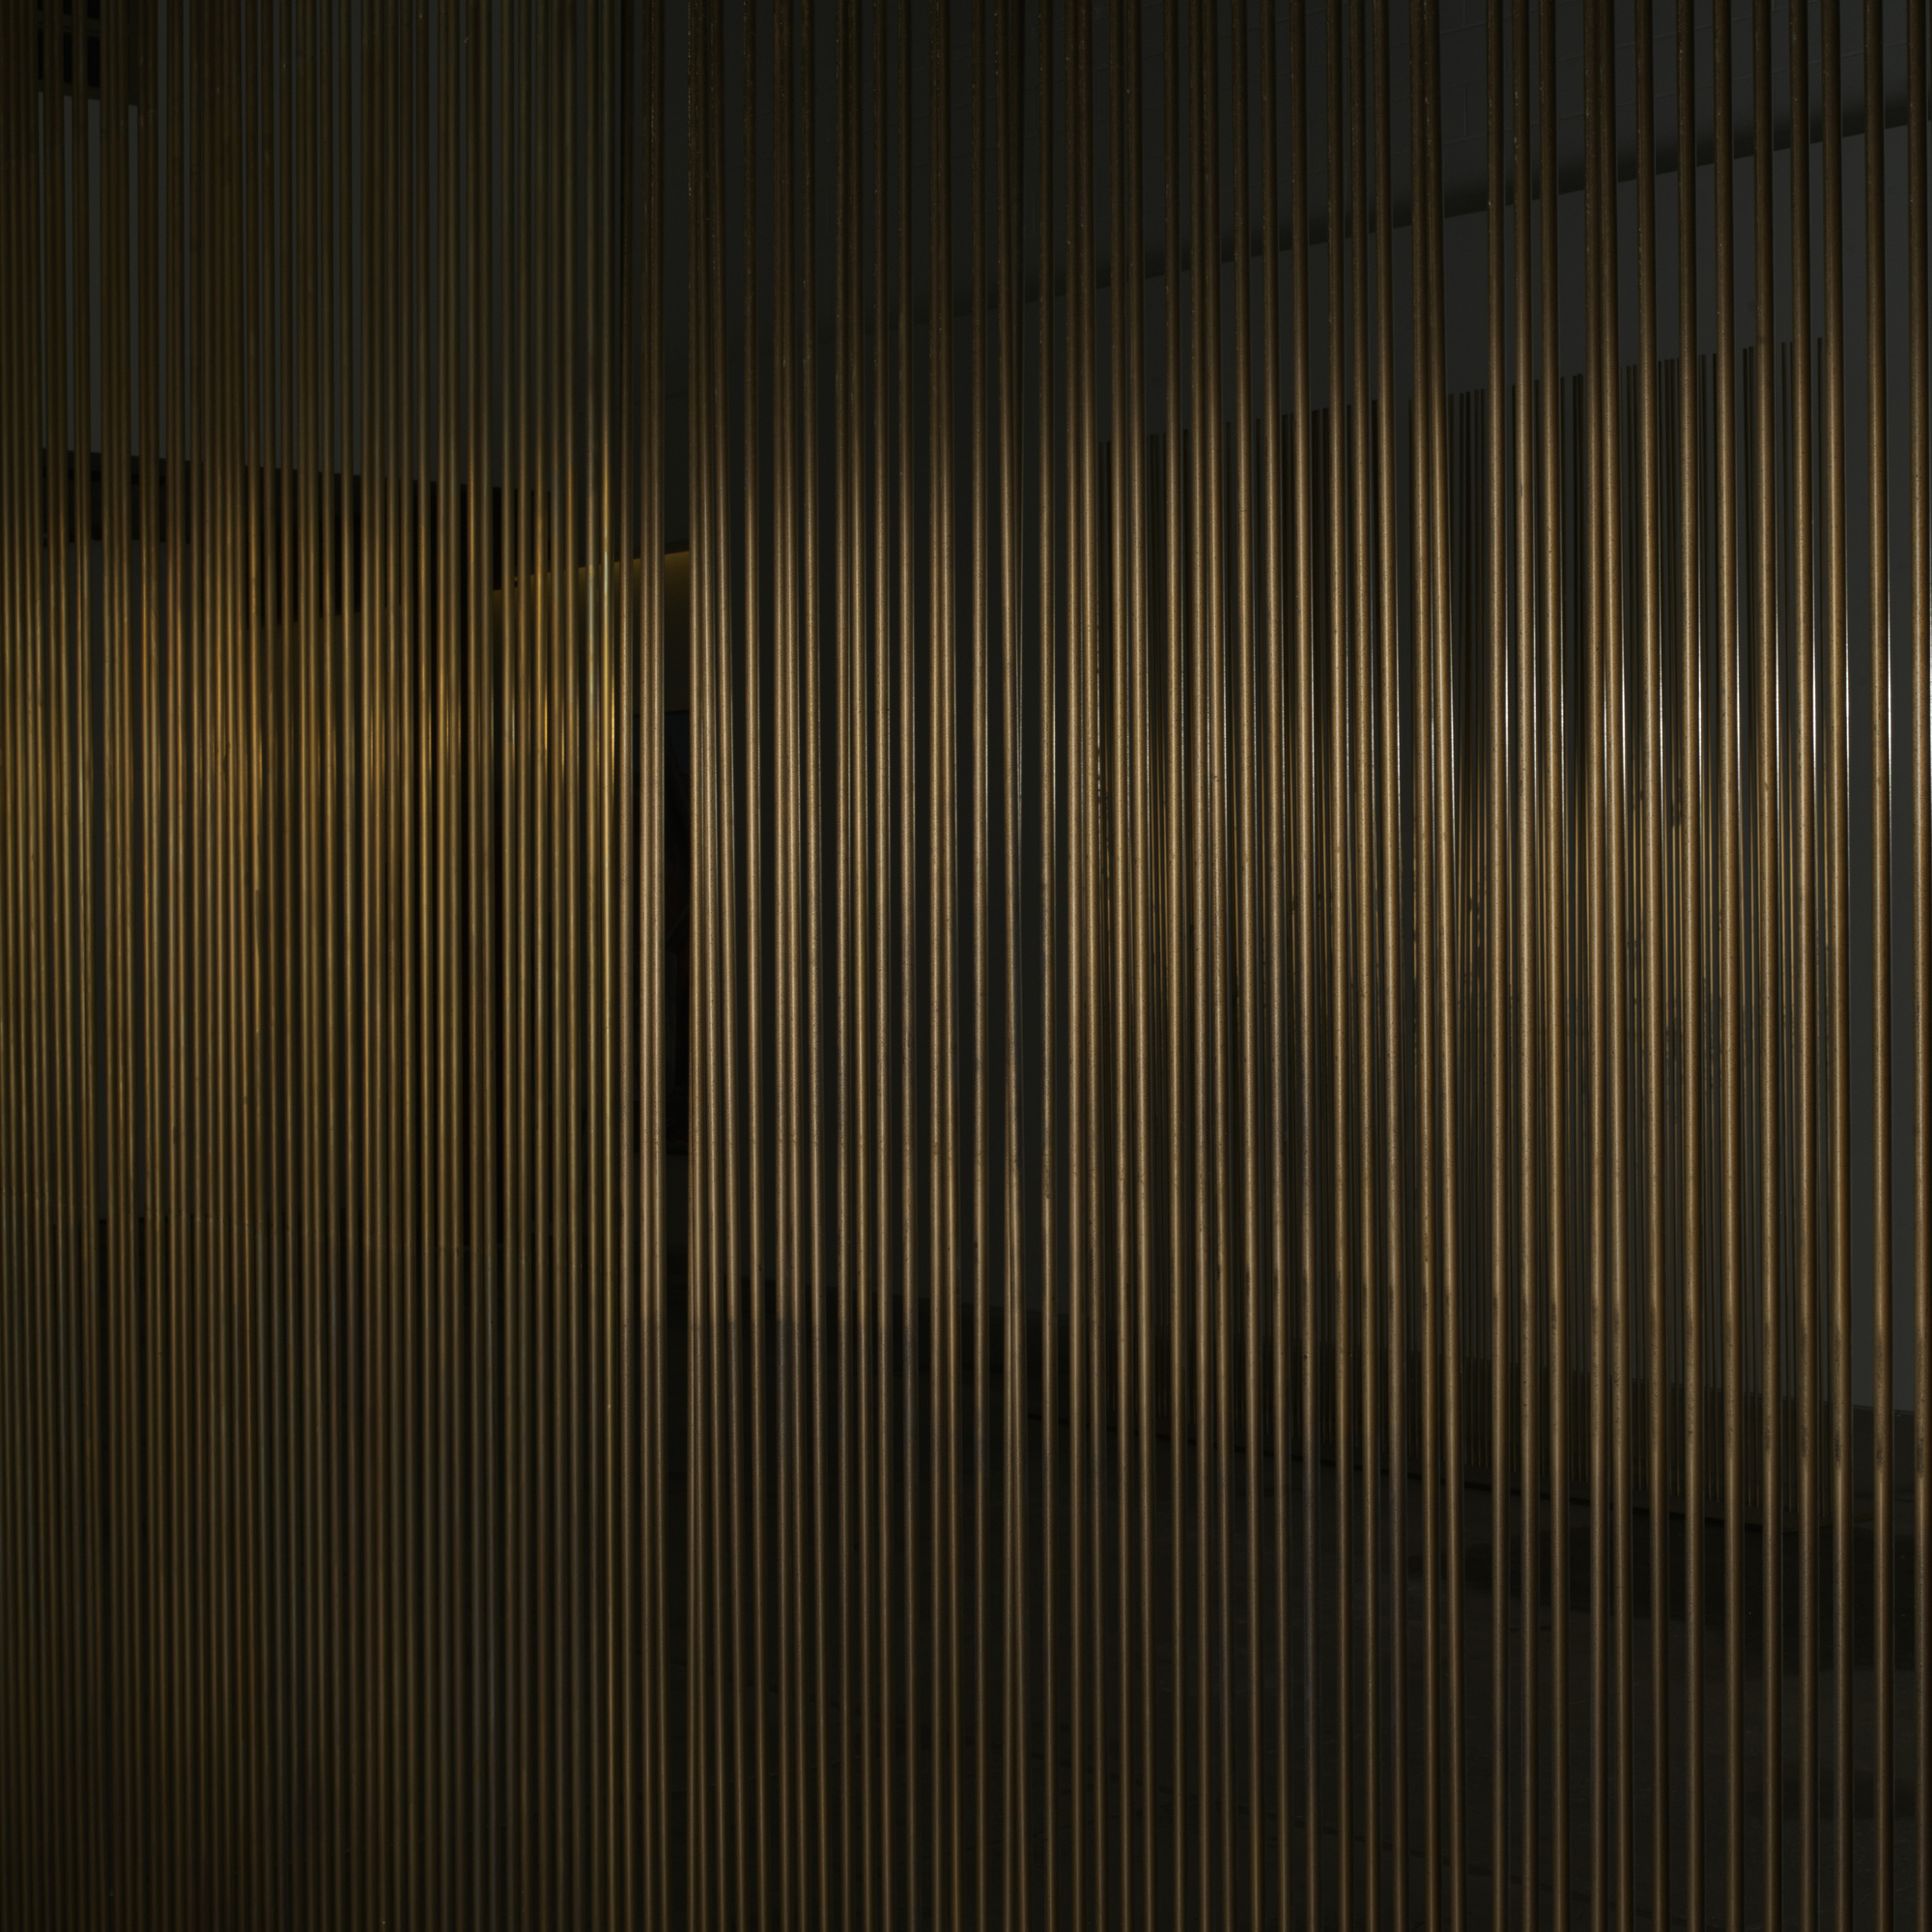 30: Harry Bertoia / Untitled (Monumental Sonambient) from the Standard Oil Commission (3 of 4)